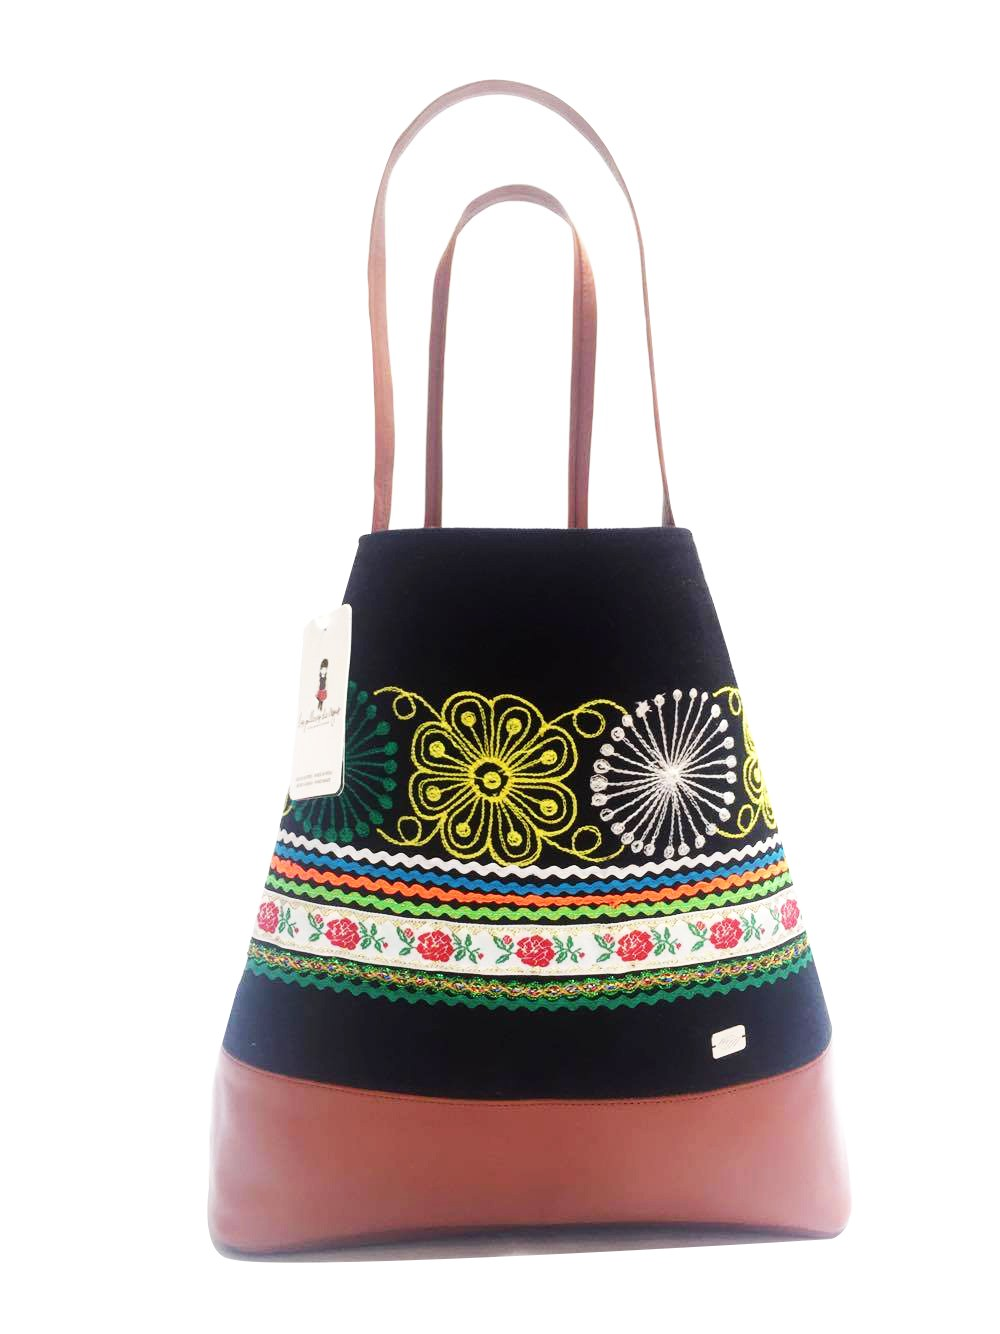 Bolso Eliseo - Quispicanchis